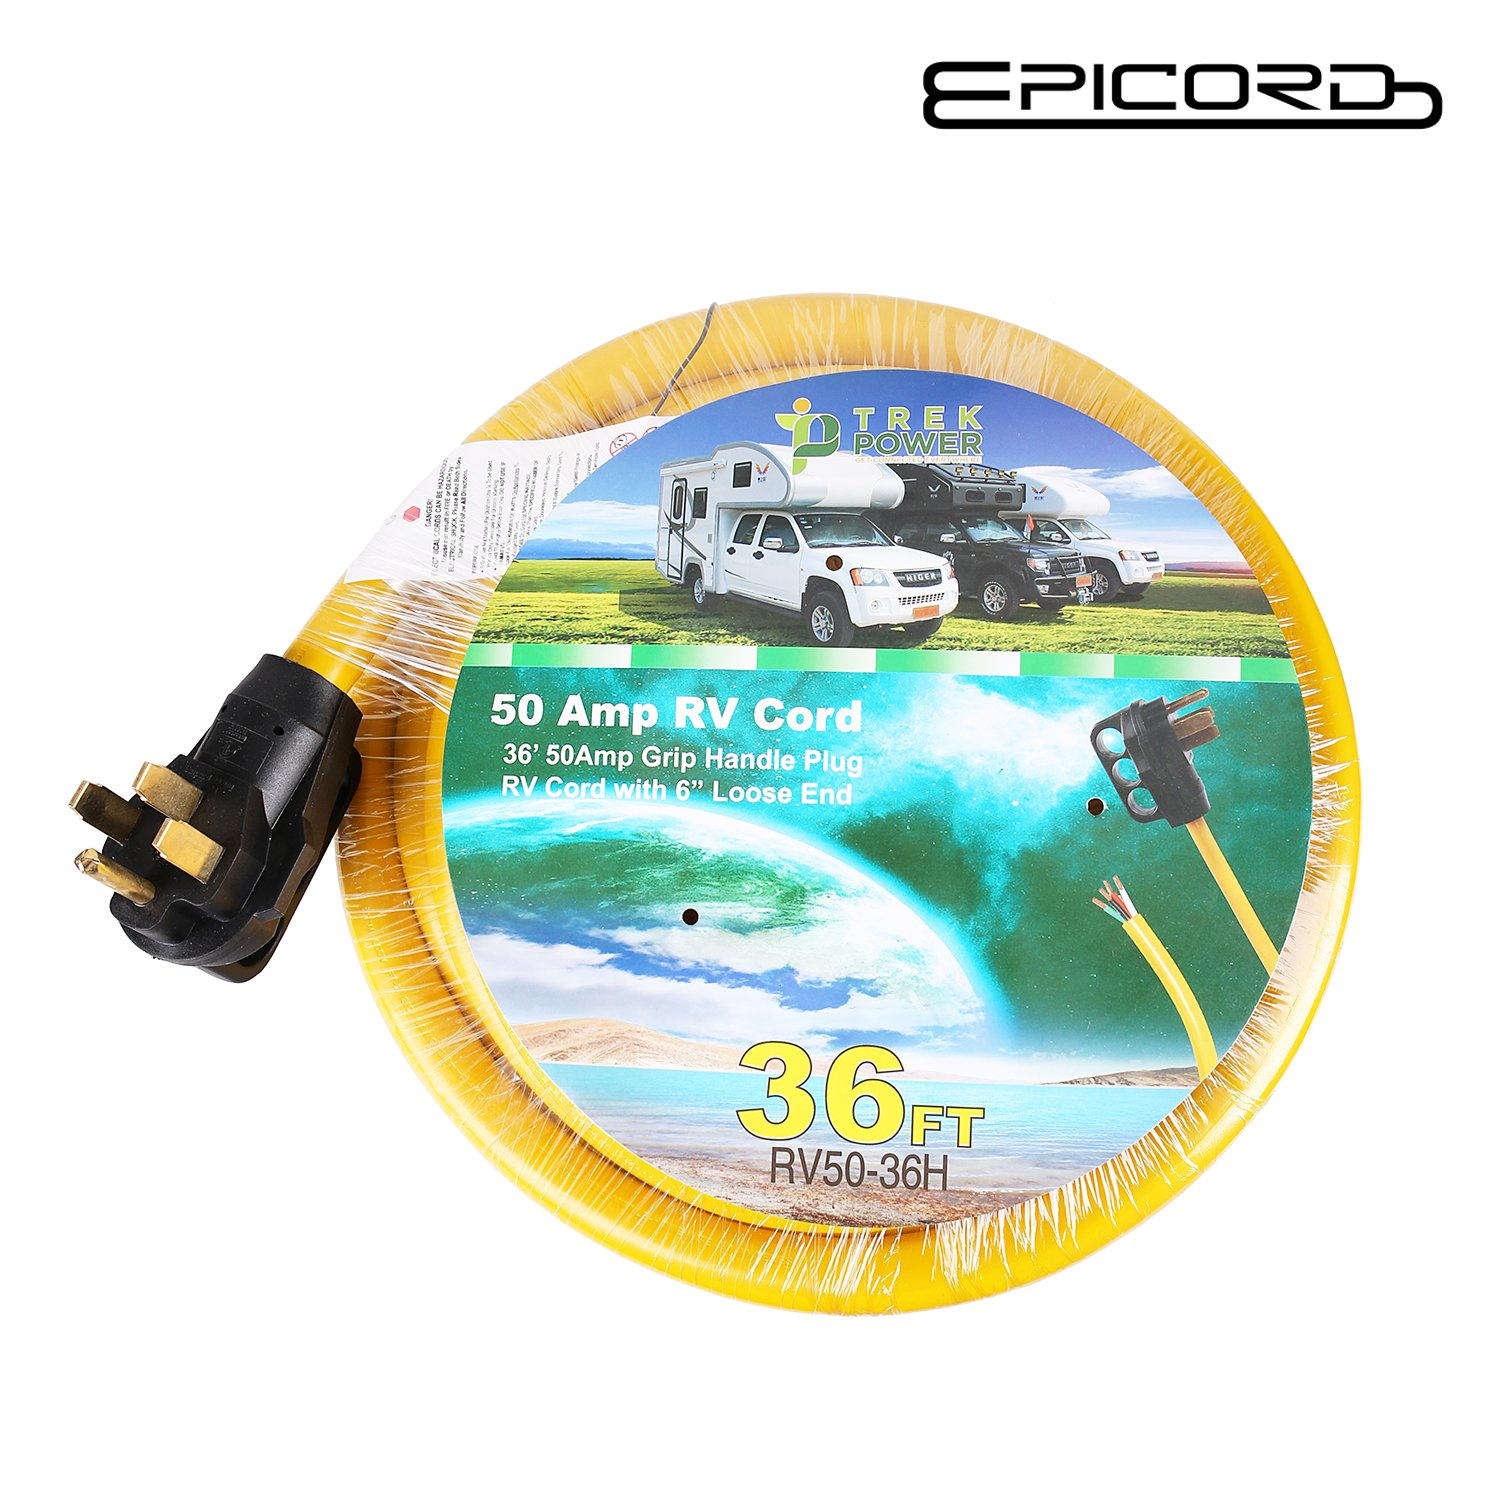 Epicord Rv Extension Cord 50 Amp Grip Handle Plug With Loose End Receptacle 36ft 125v 250v